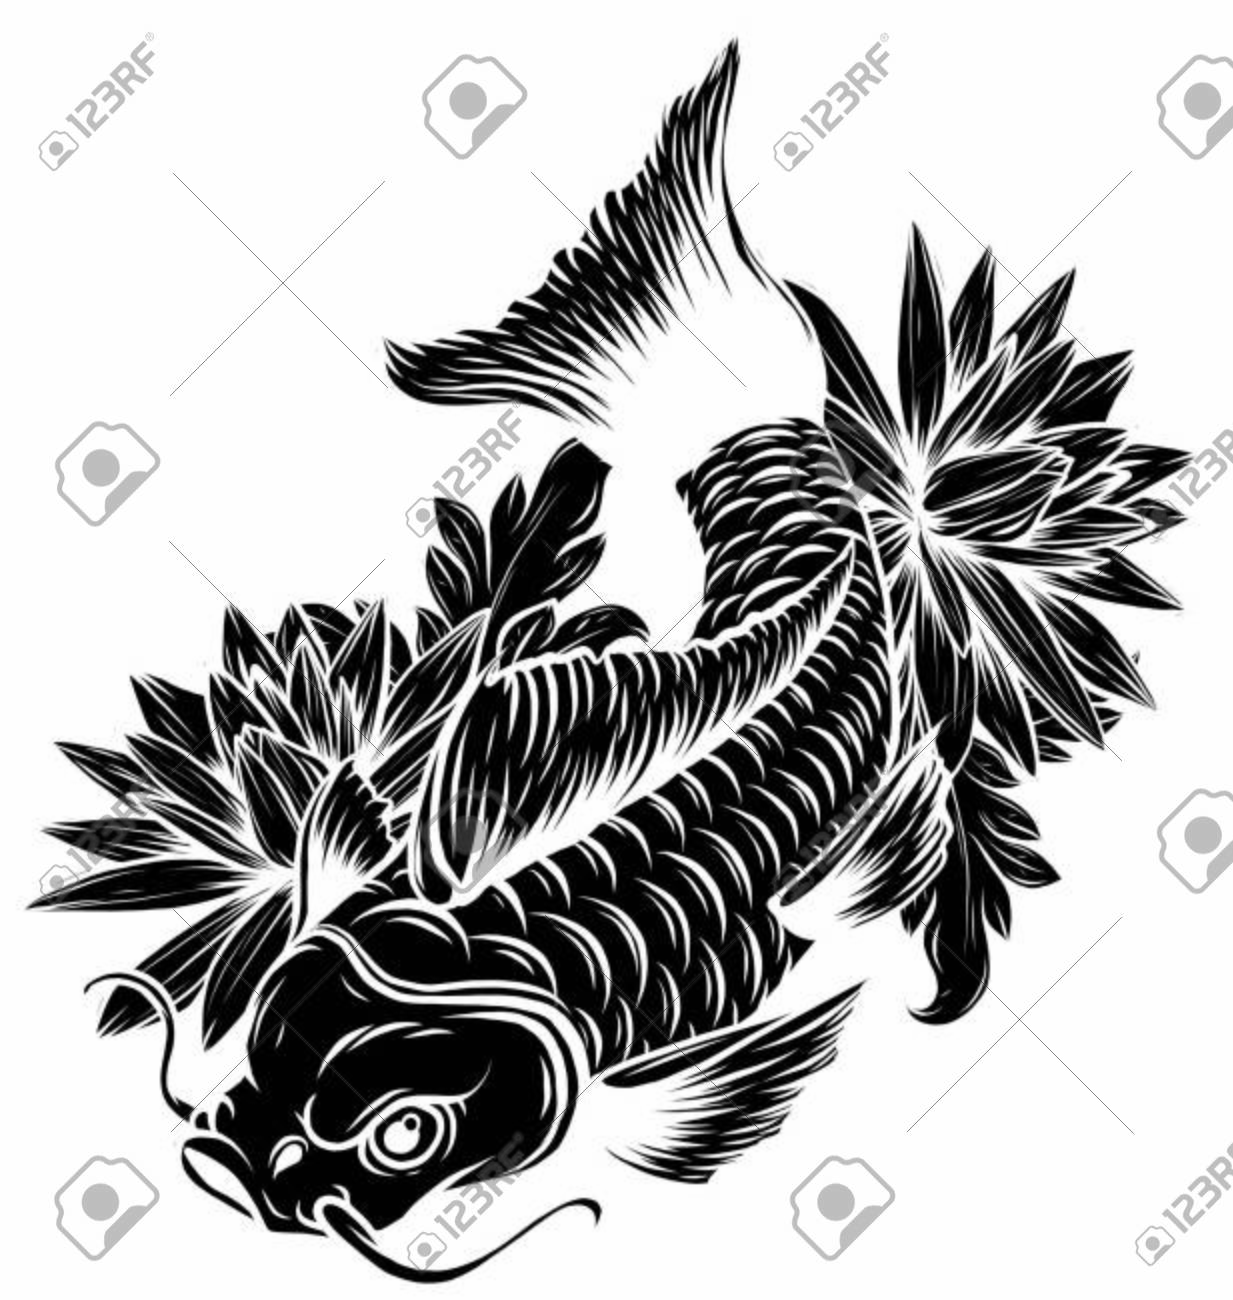 Hand Drawn Outline Koi Fish Gold Japanese Carp With Lotus Flowers Royalty Free Cliparts Vectors And Stock Illustration Image 135838818